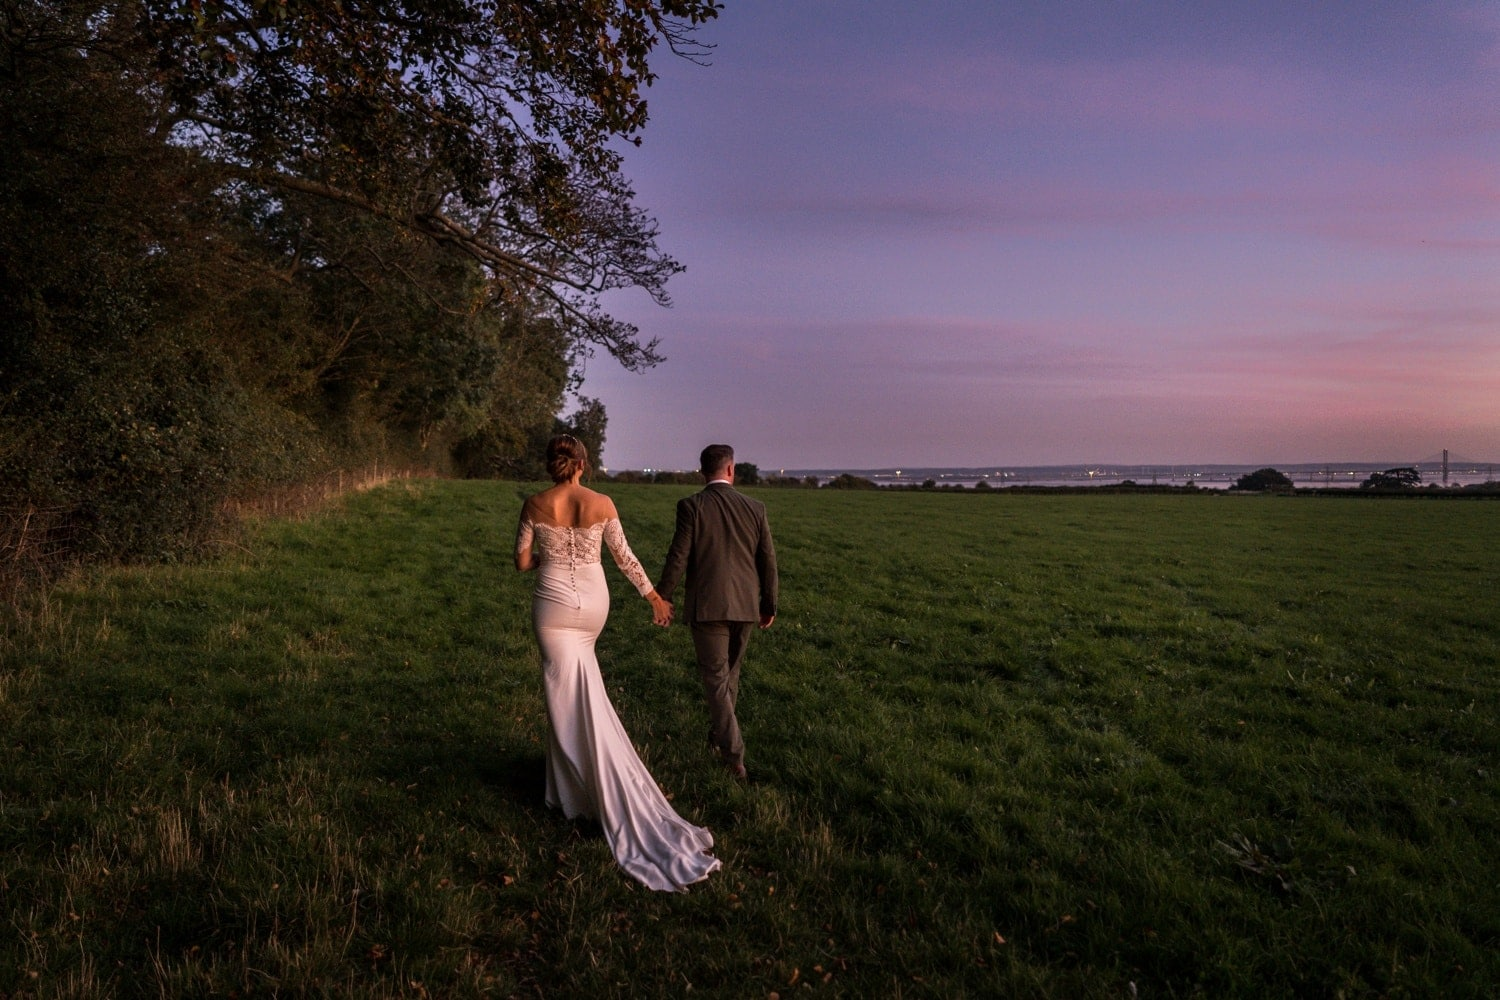 Wedding day dusk at St Tewdrics House, Monmouthshire, South Wales